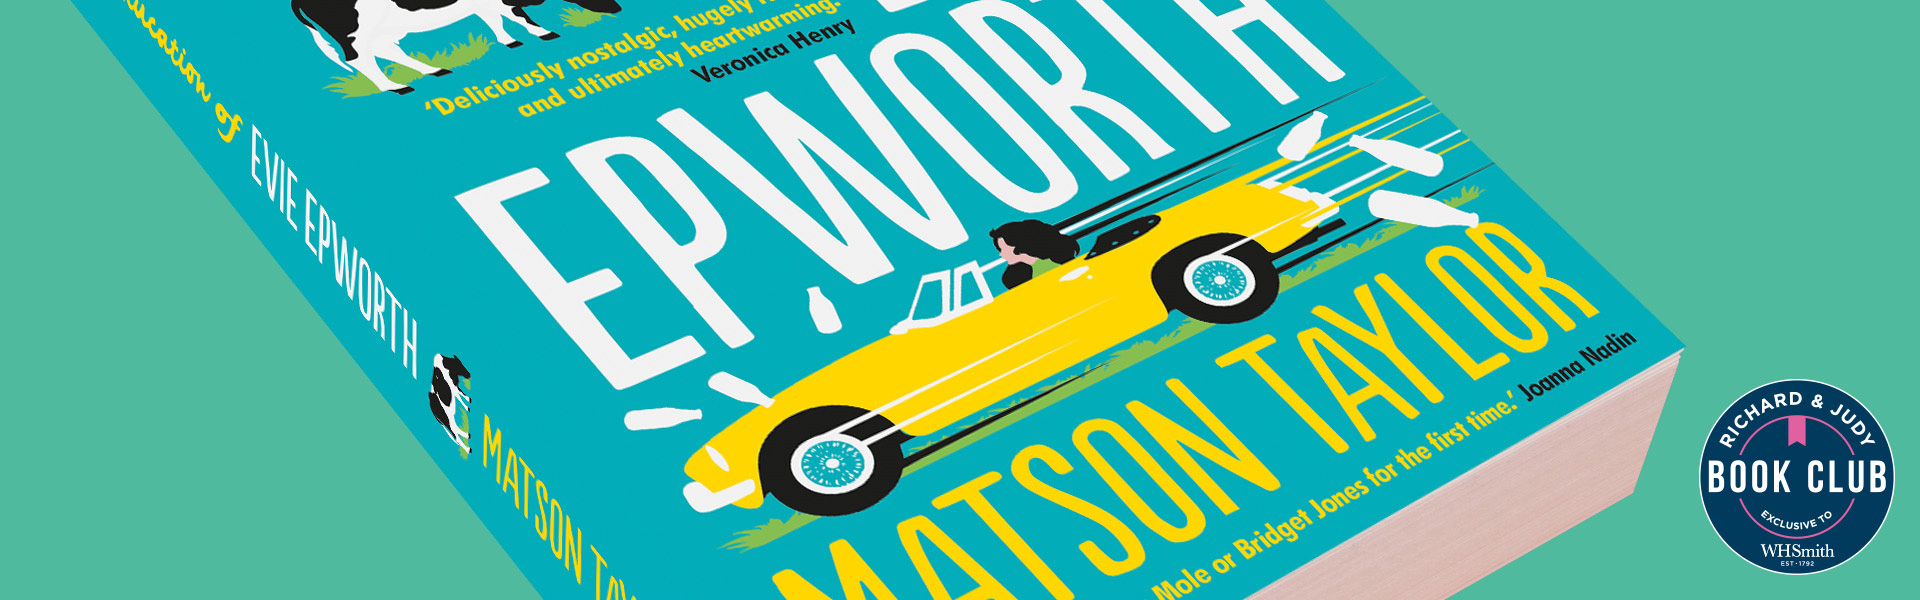 Richard & Judy Introduce The Miseducation of Evie Epworth by Matson Taylor